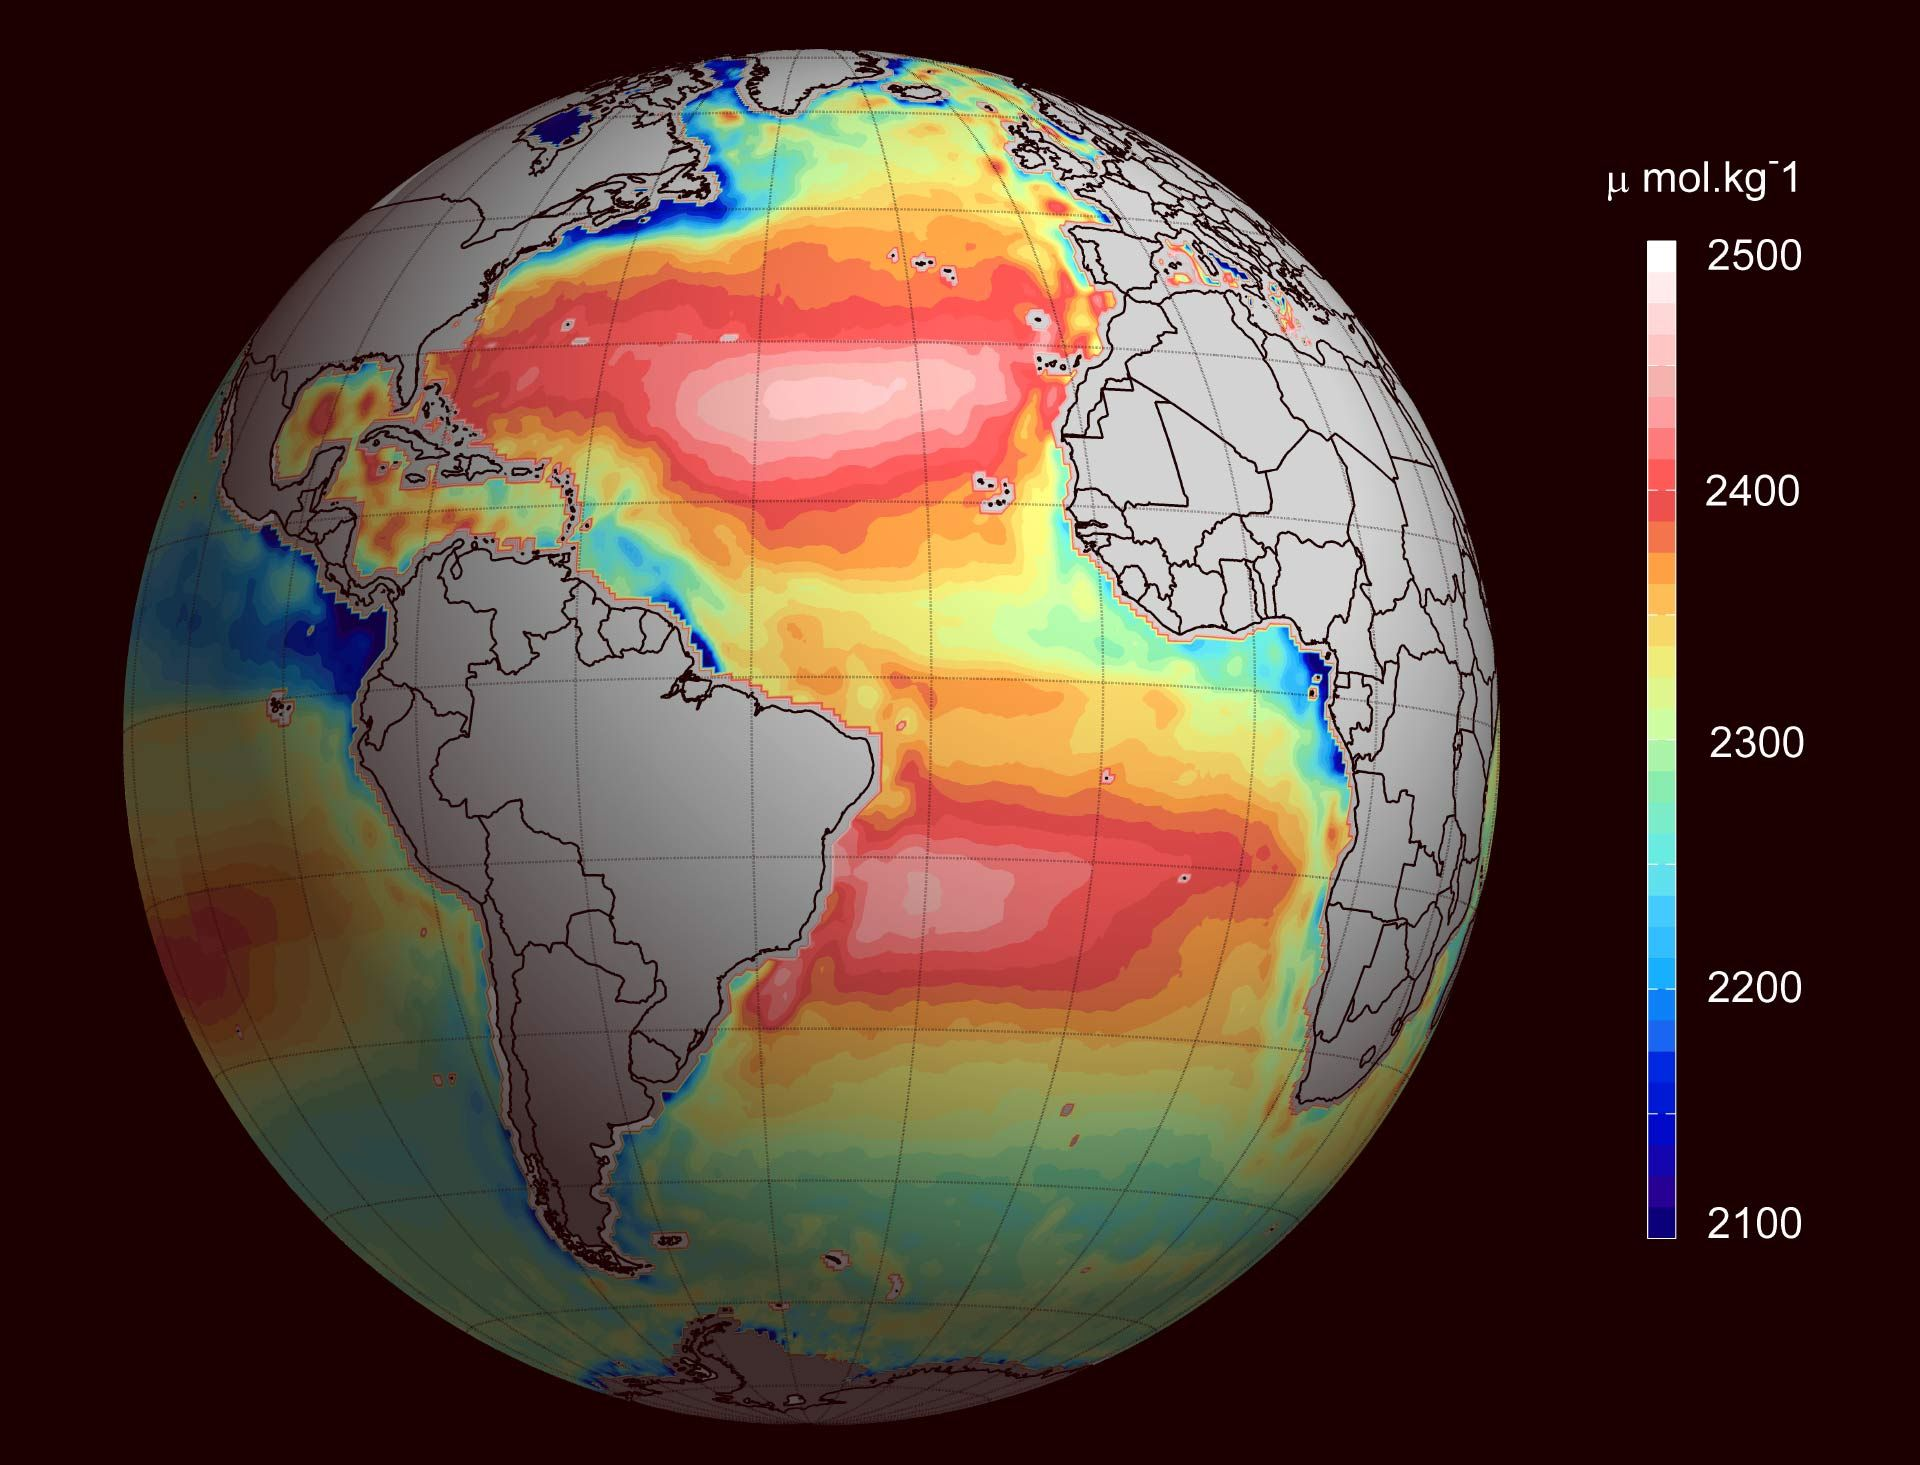 Temperature and salinity measurements averaged between 2010 and